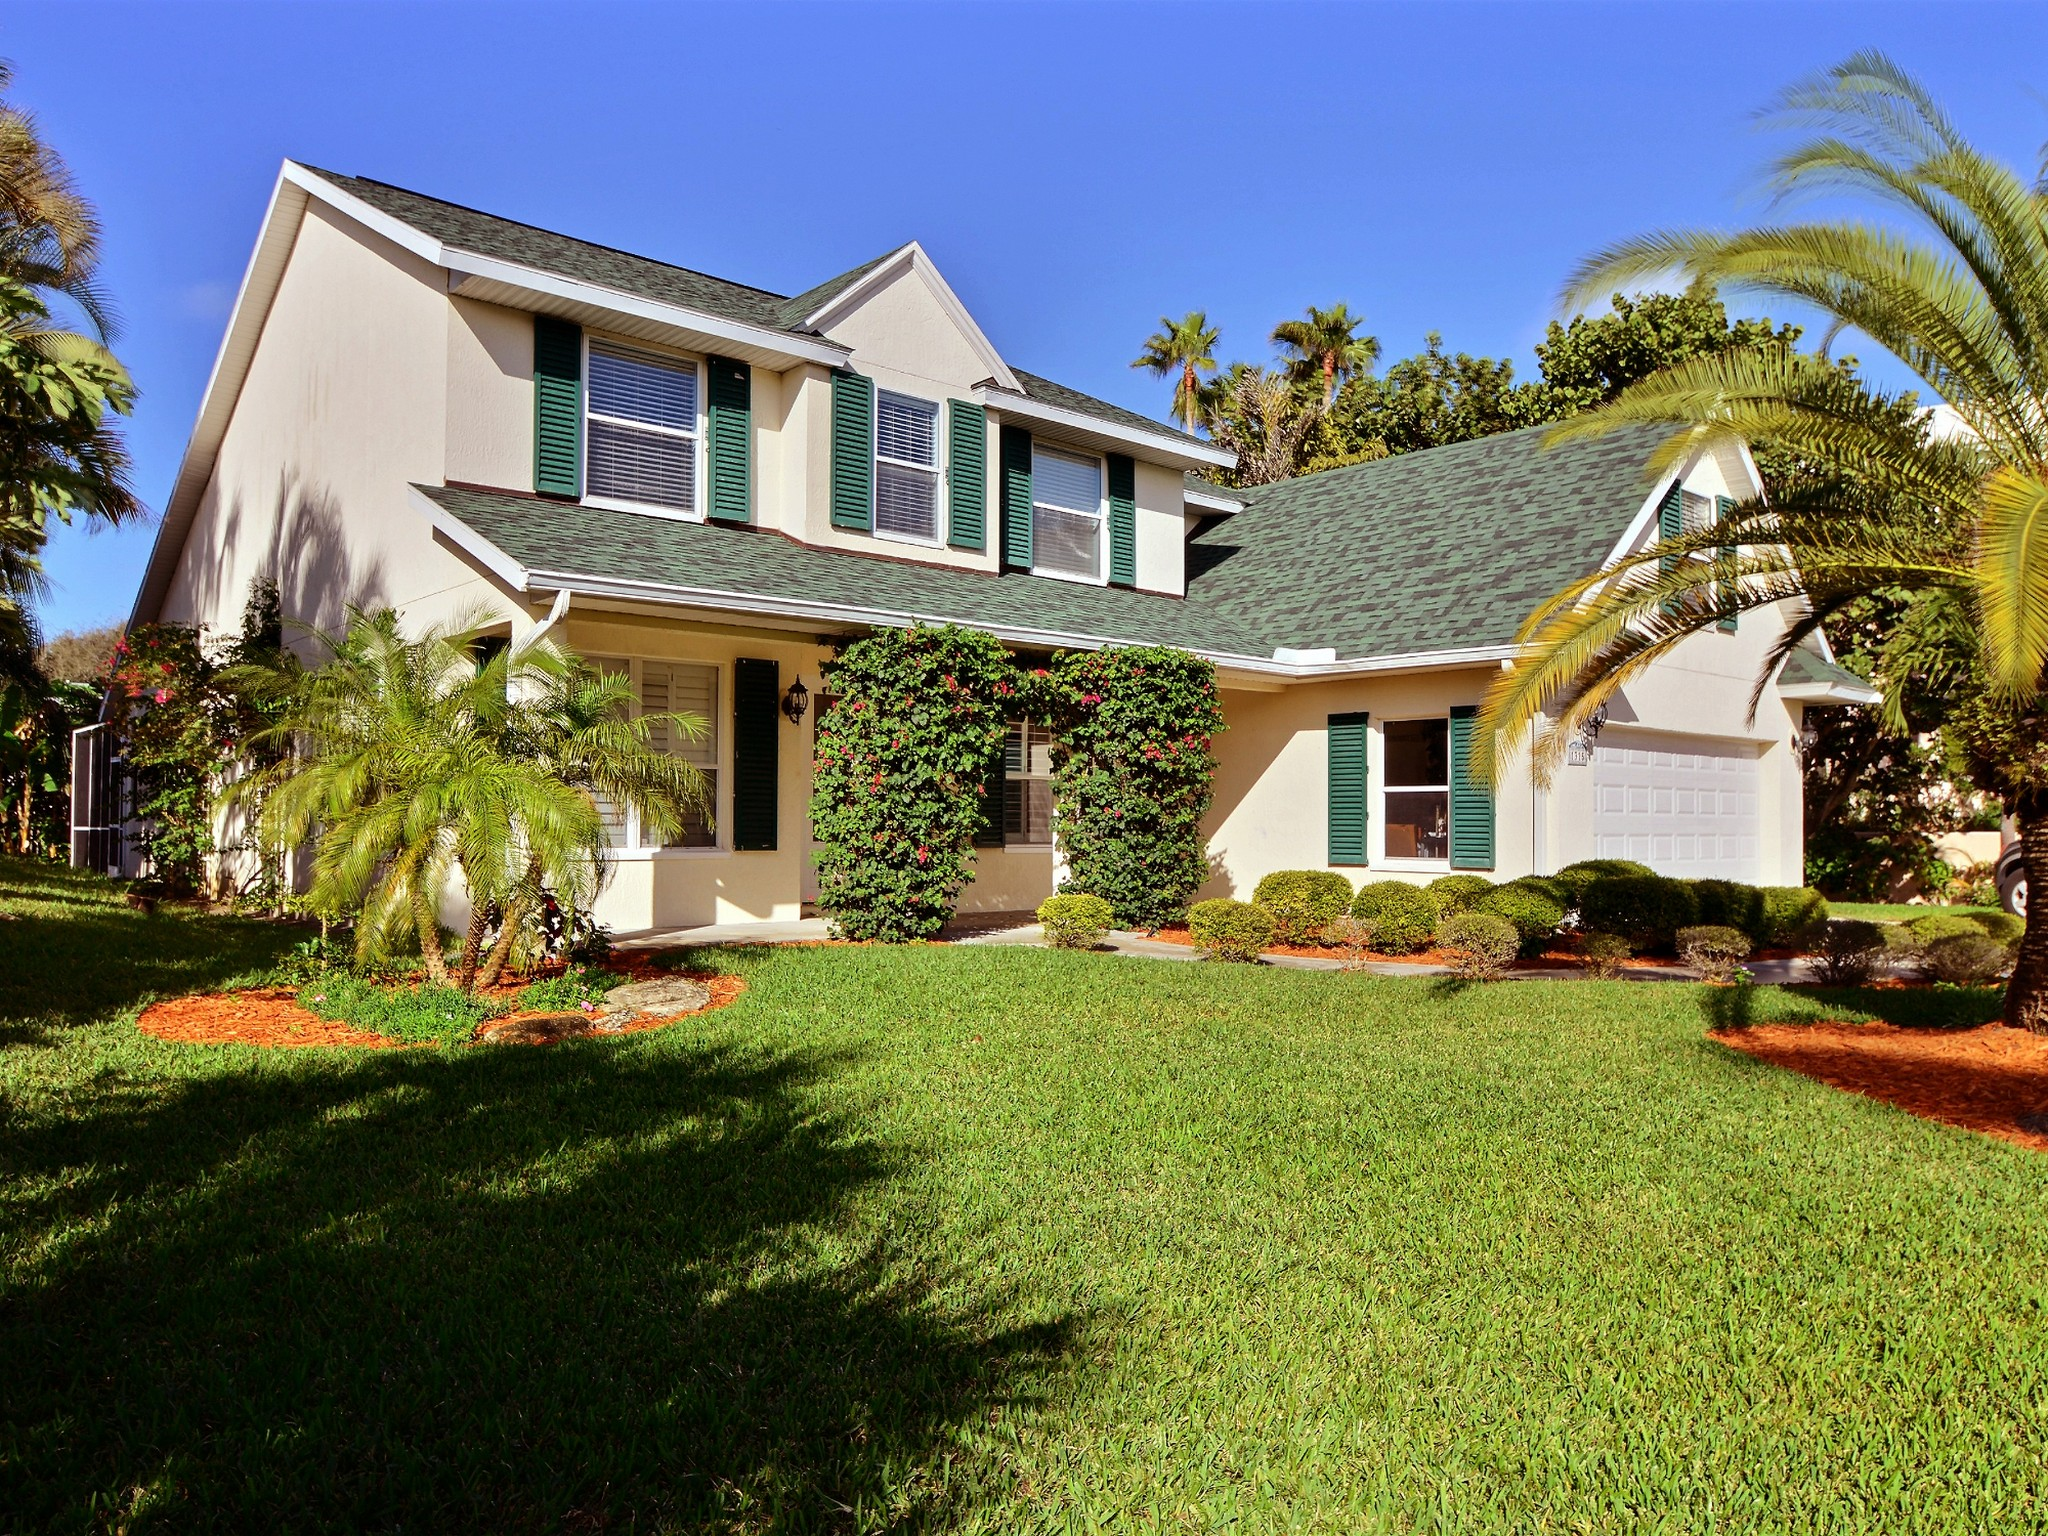 Property For Sale at Steps to Ocean, Move In Ready, 4 BR CBS Pool Home